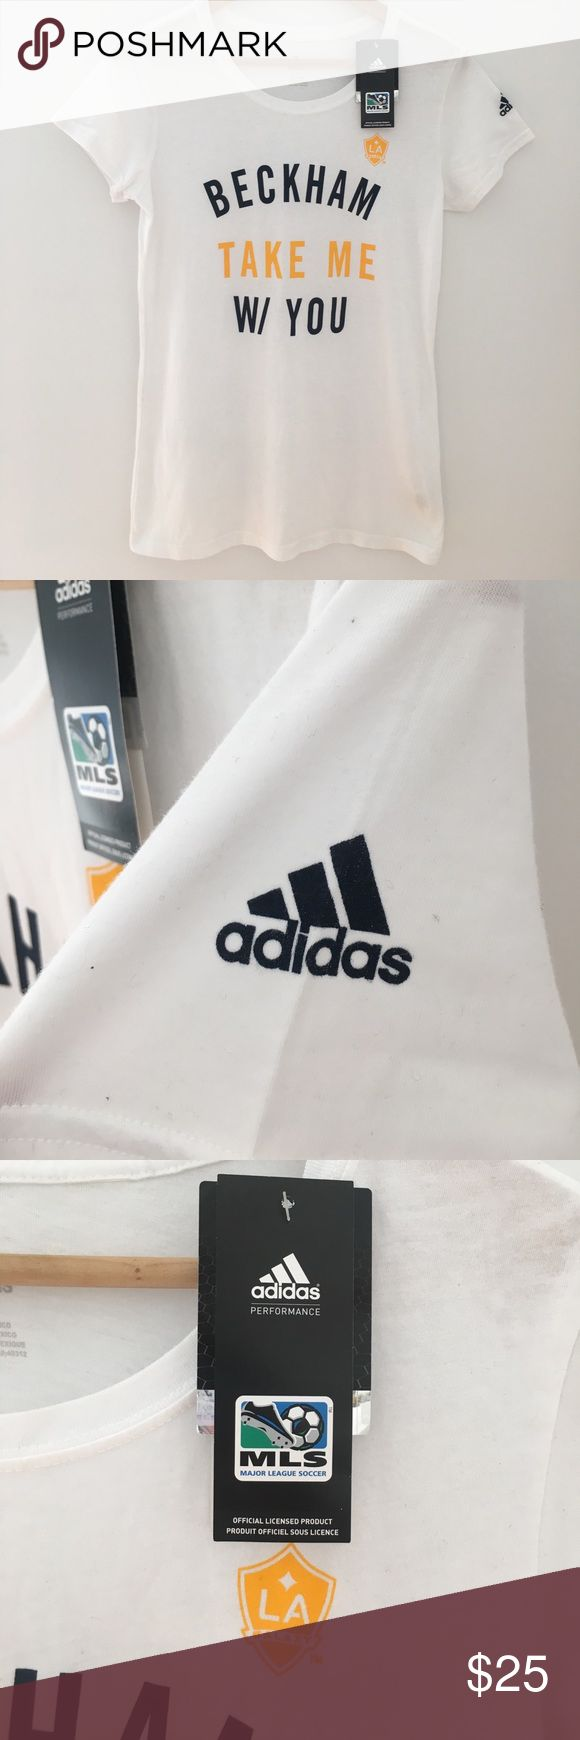 "NWT- Authentic Adidas MLS ""Beckham"" Tee This Adidas women's fitted t-shirt is from David Beckham's last game with MLS & the LA Galaxy. It says, ""Beckham Take Me W/ You"".  It is new with tags. Purchased at the stadium during the MLS Cup game in LA. Authentic collectors shirt. Brand new with tags. Perfect condition. Comes from a clean, non-smoking home. adidas Tops Tees - Short Sleeve"